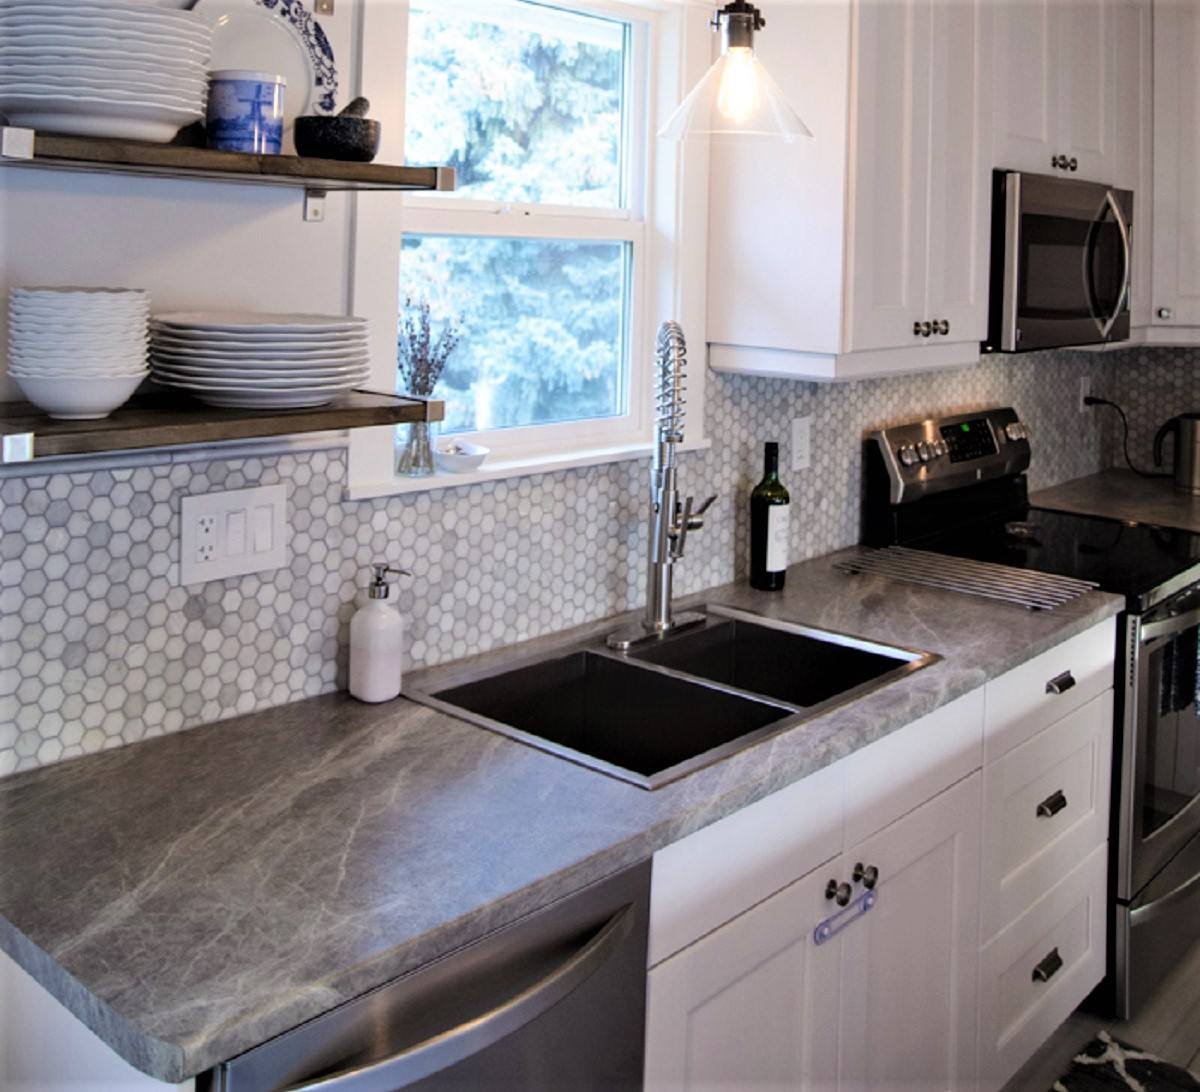 Non Functional Kitchen Rehab After